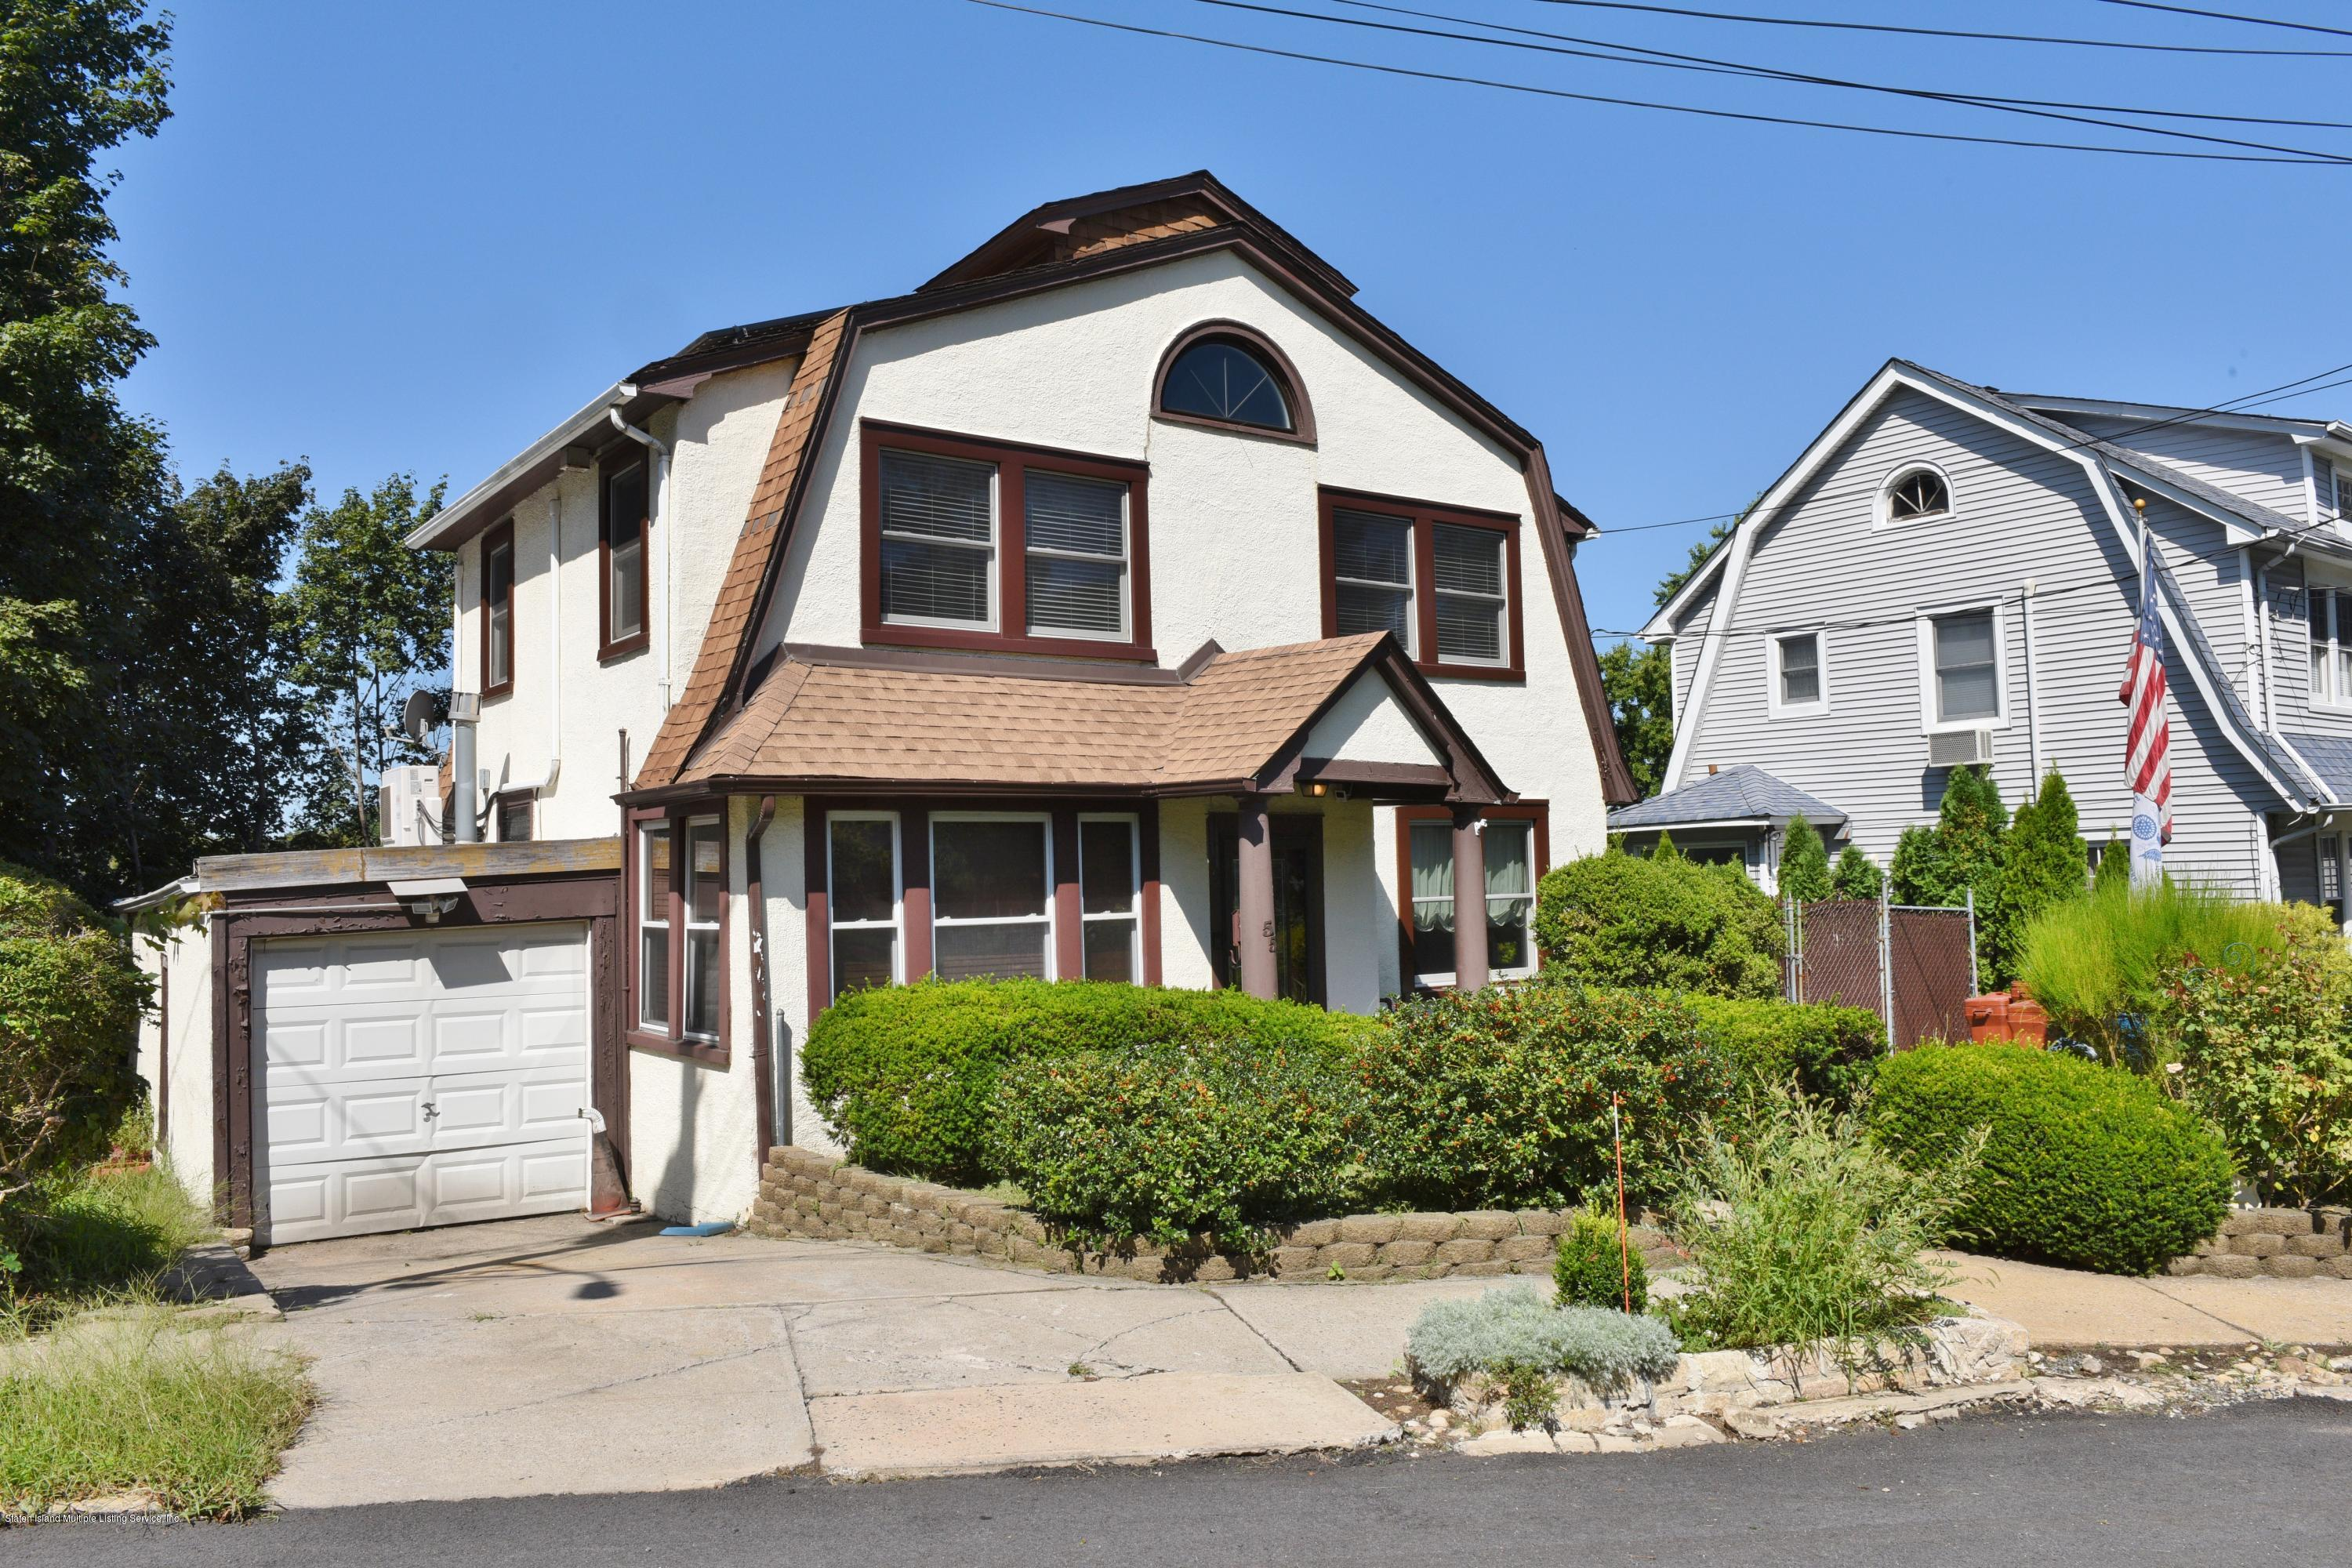 Single Family - Detached 55 Fort Hill Circle  Staten Island, NY 10301, MLS-1131735-2